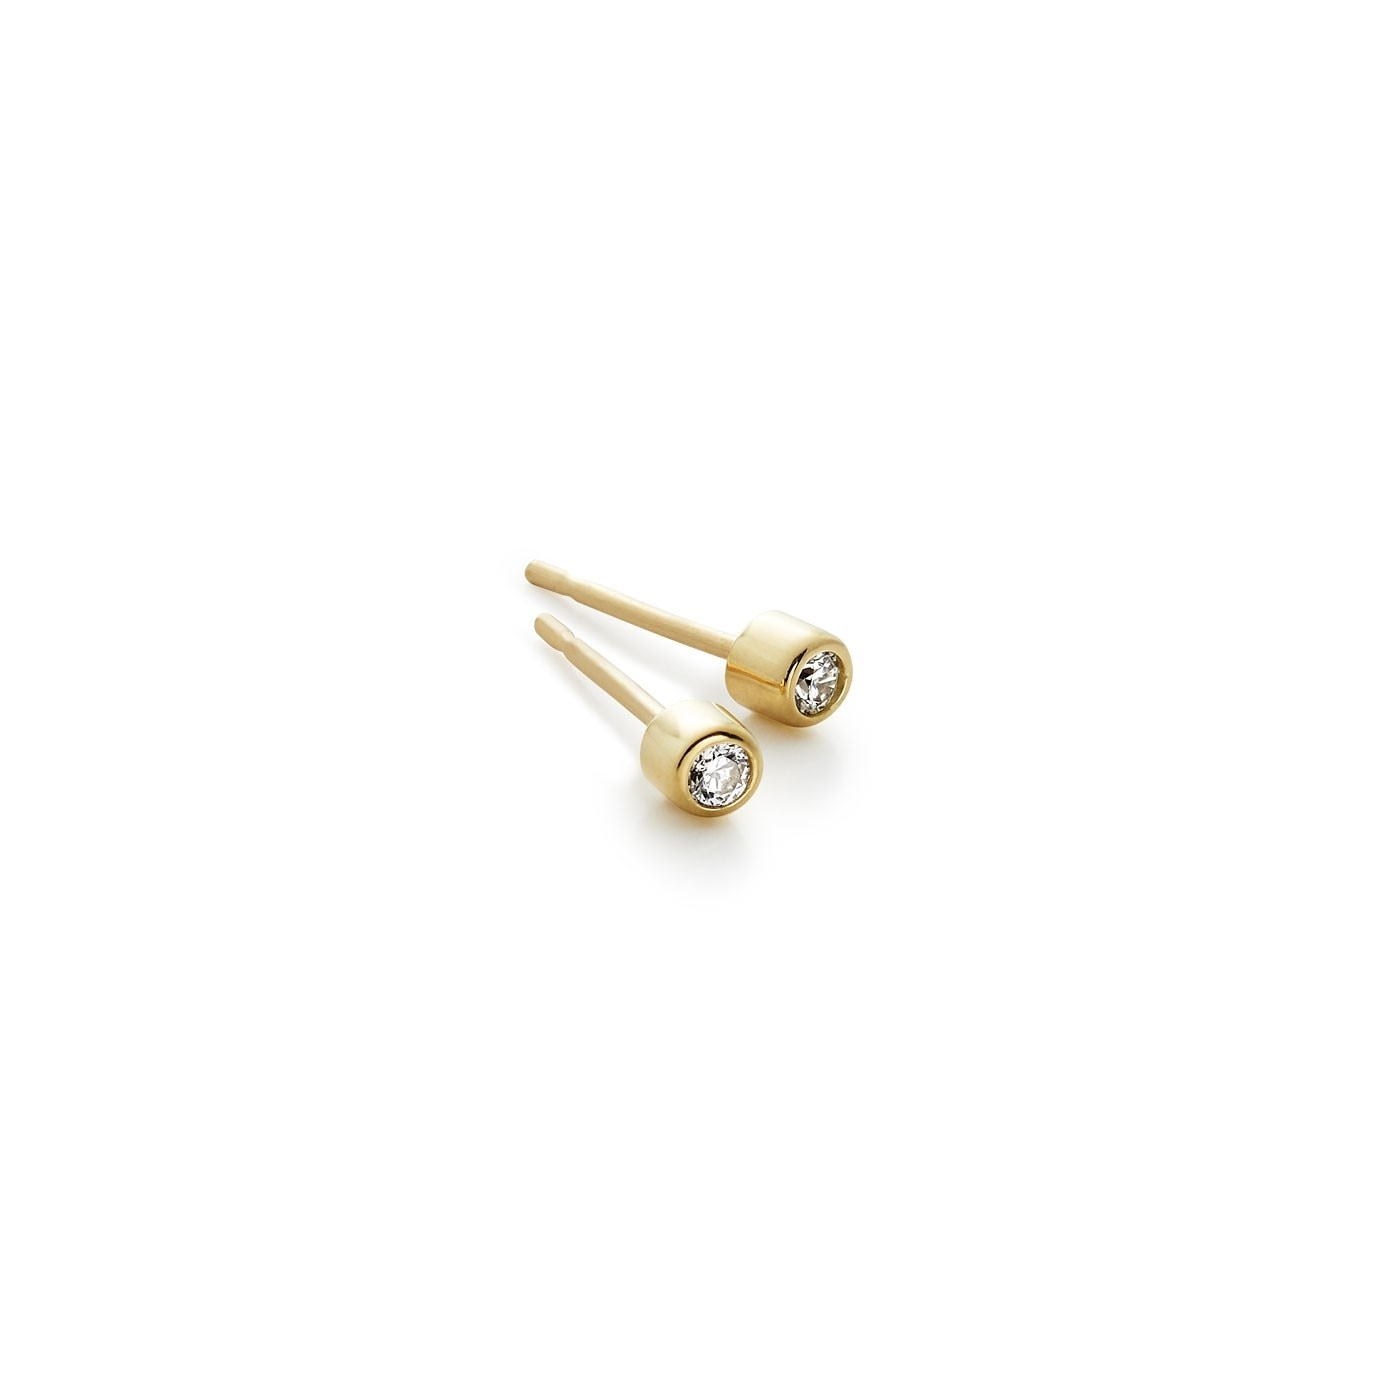 Gloria örhängen 18K 0,14 ct